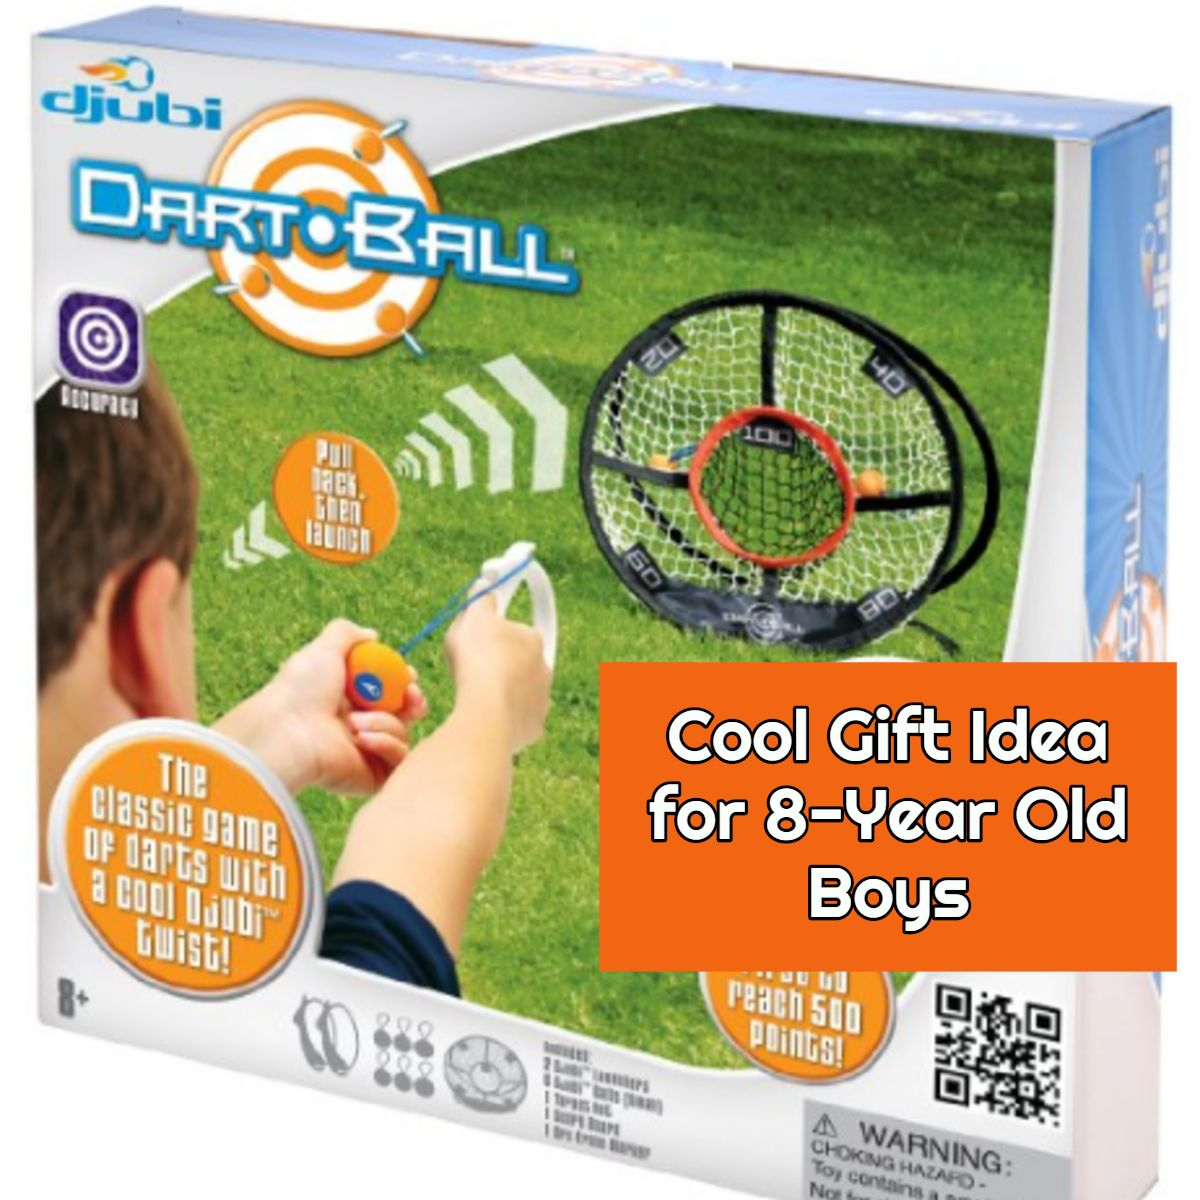 DJUBI DART BALL Cool Gift Idea For 8 Year Old Boys